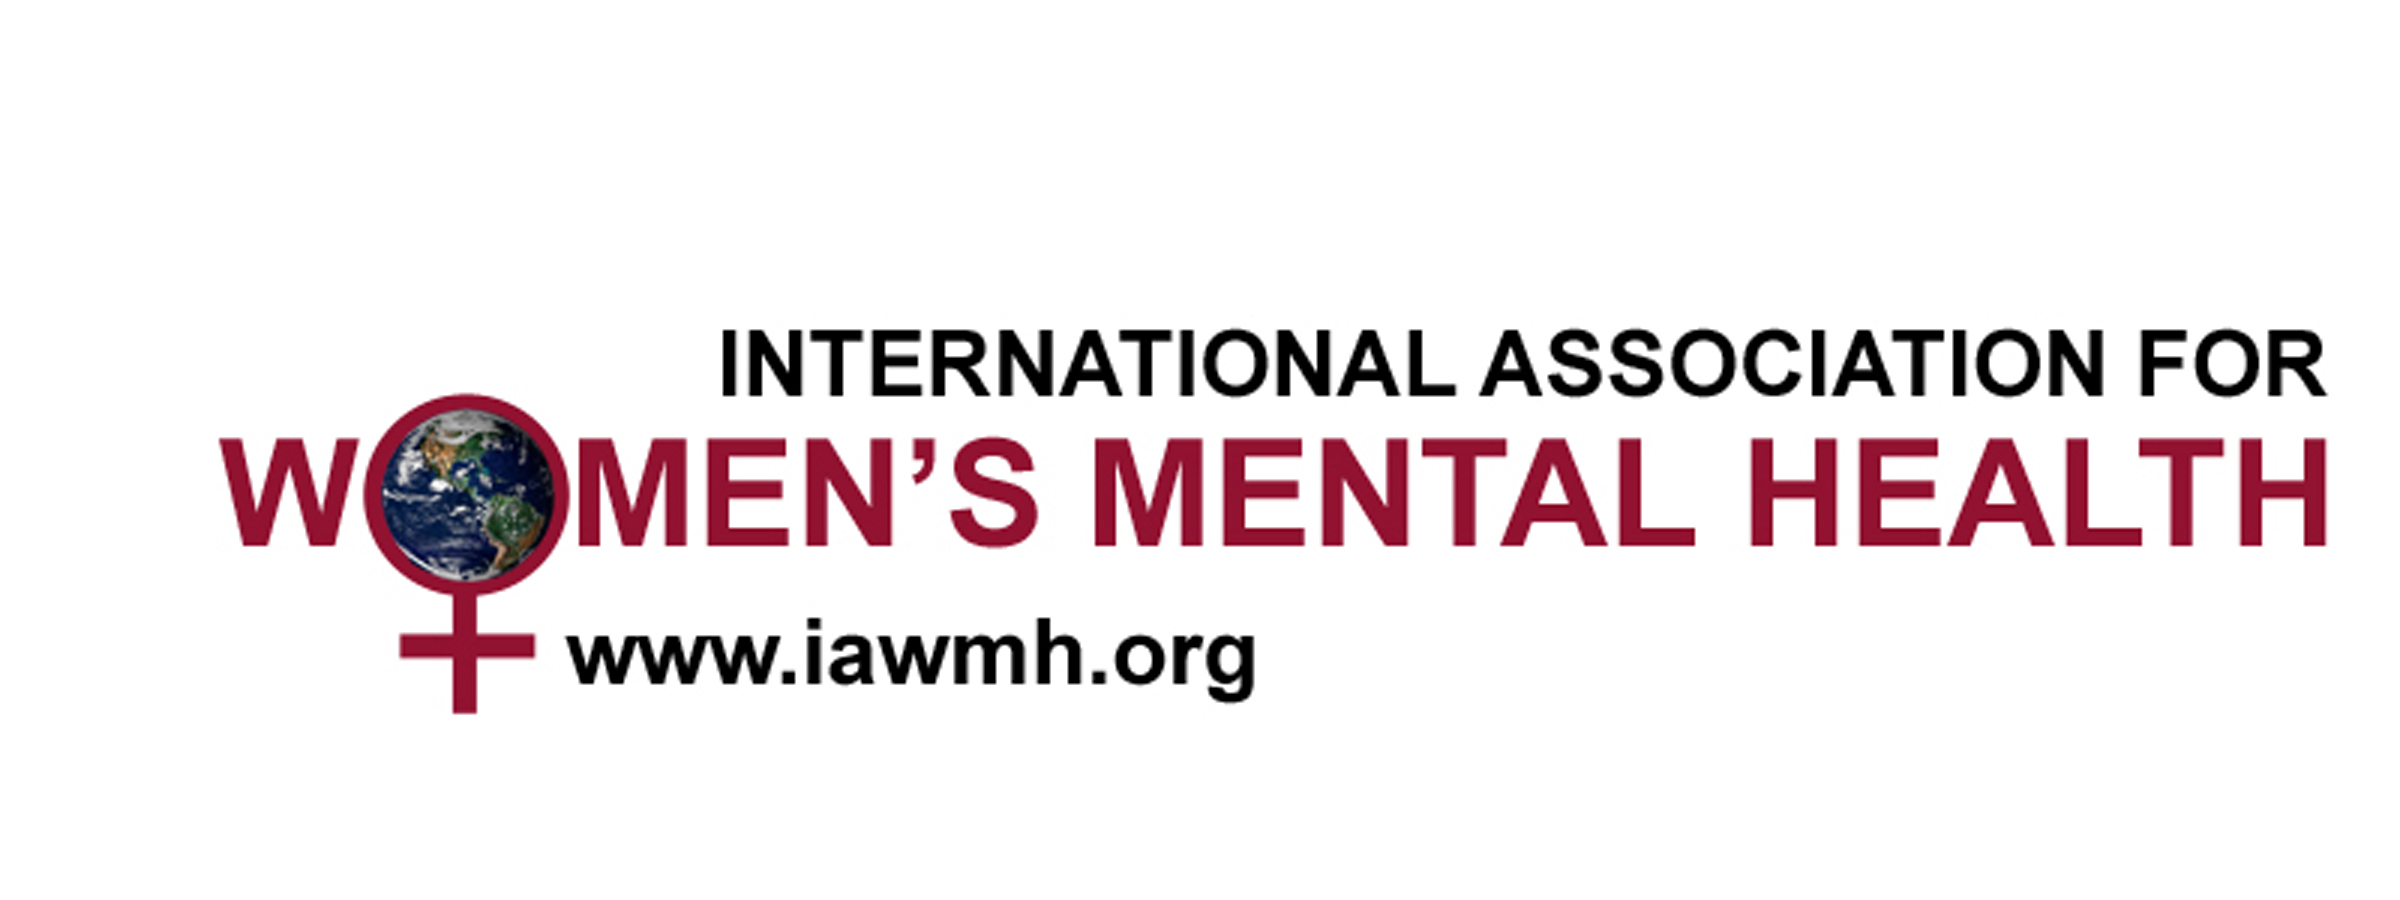 IAWMH 2021 - 9th World Congress on Women's Mental Health